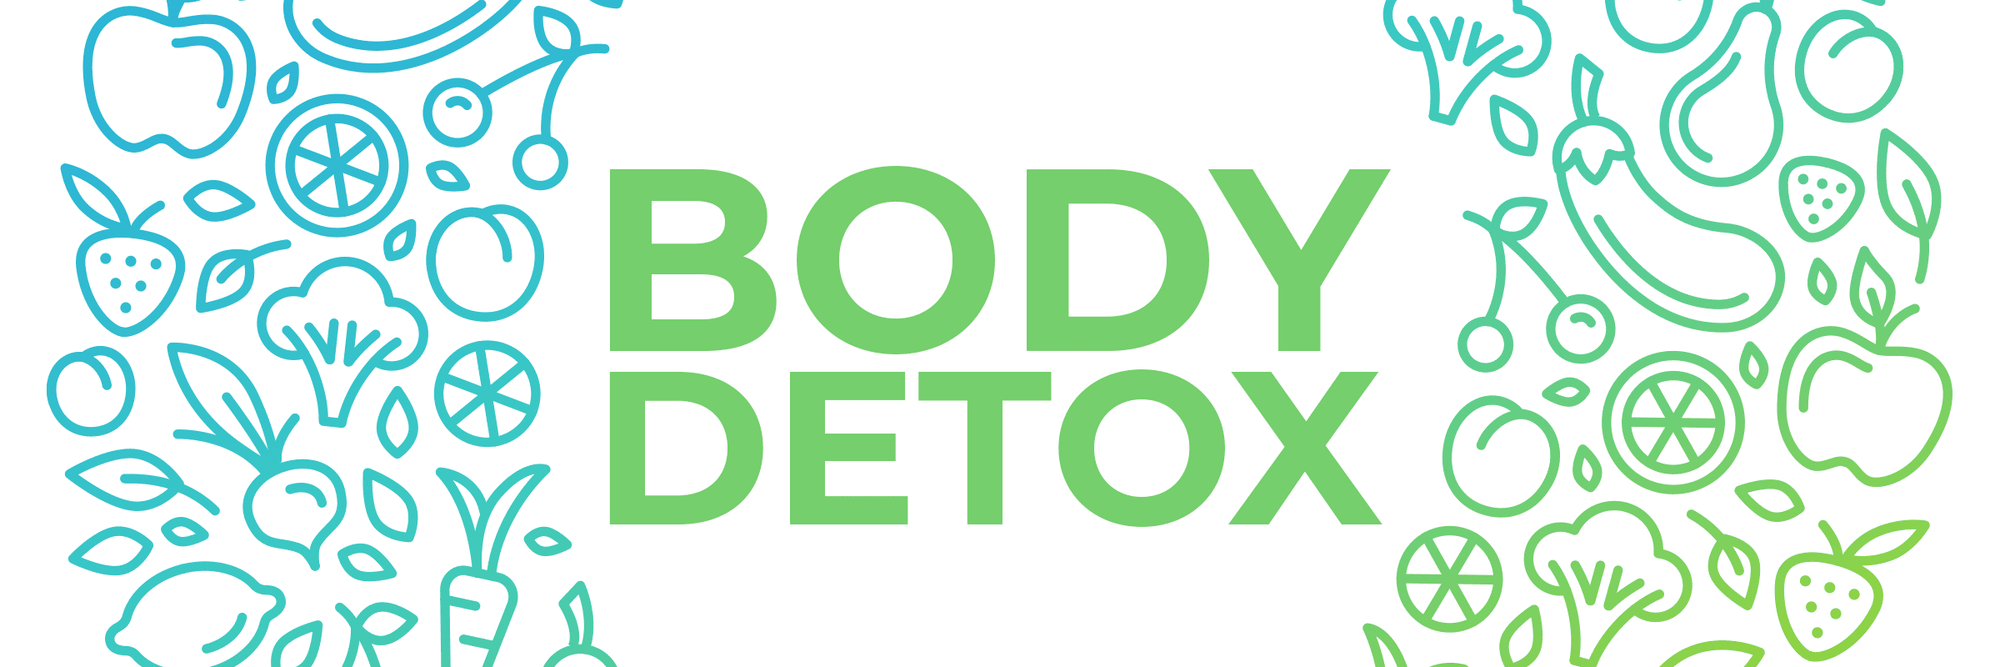 Body Detox: Reduce Toxins!